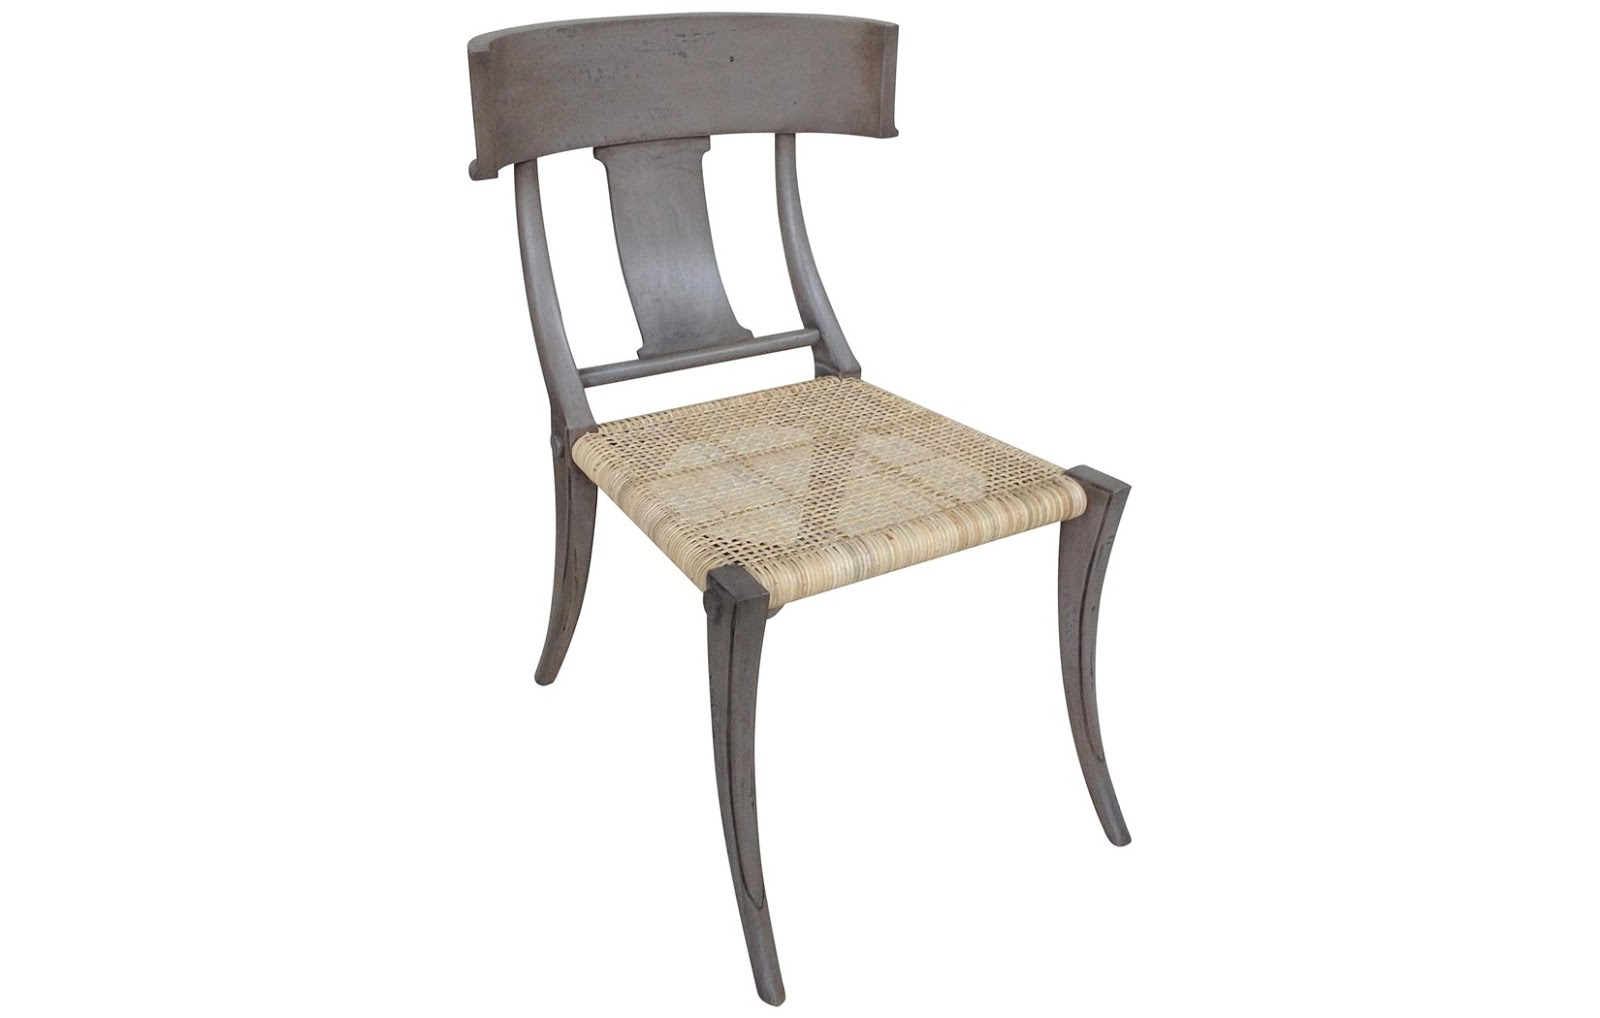 Ancient greek klismos chair - These Are The Beauties That I Am Waiting On For My Own Kitchen With A